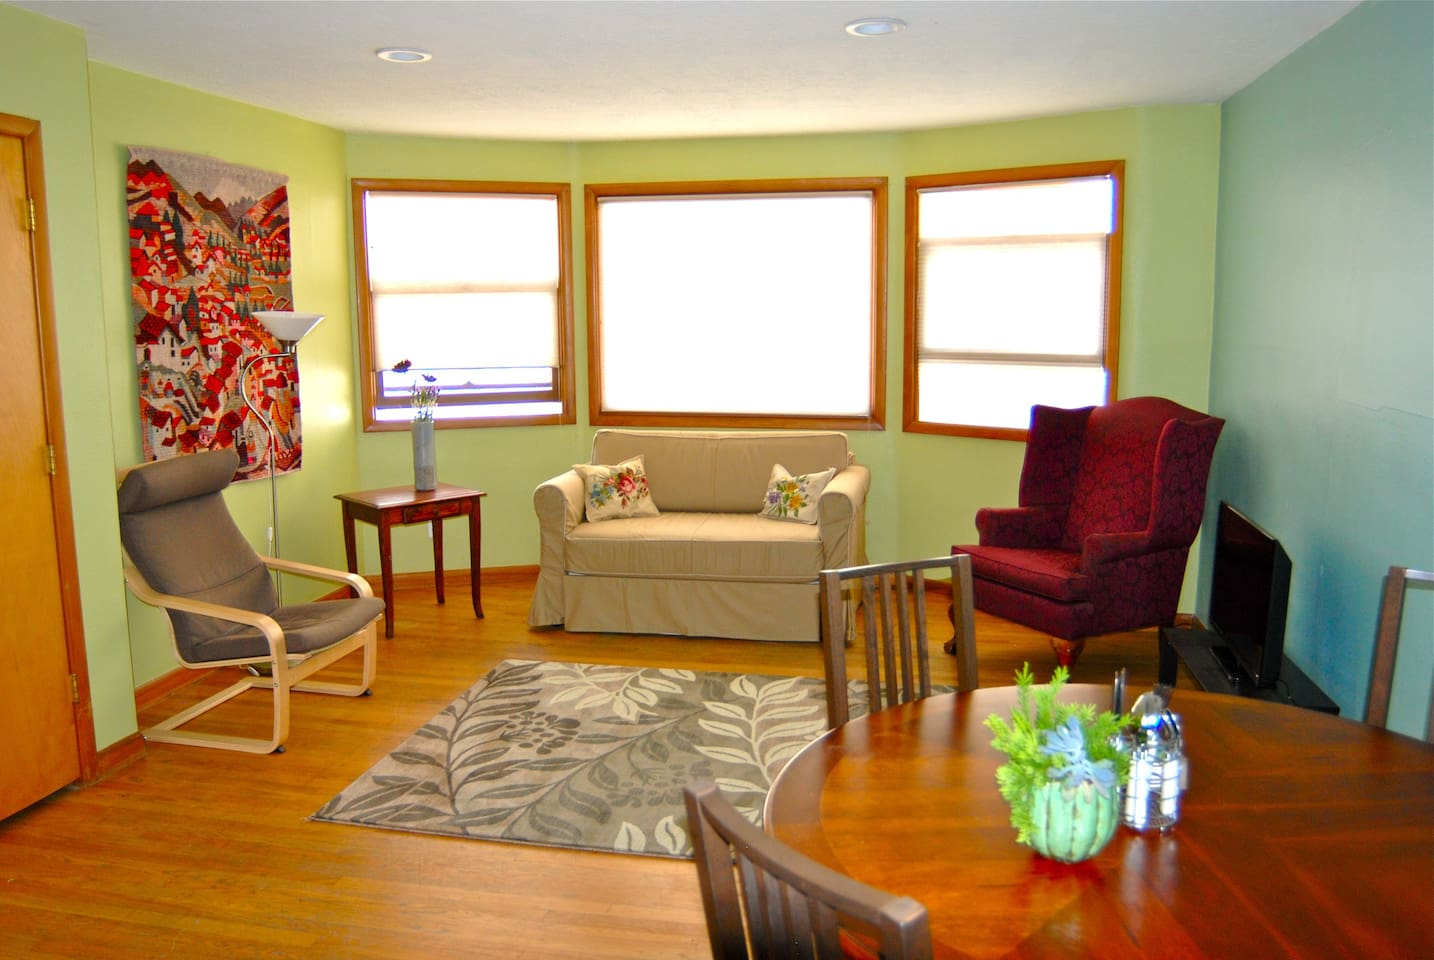 Great natural light shines through these windows. New couch.